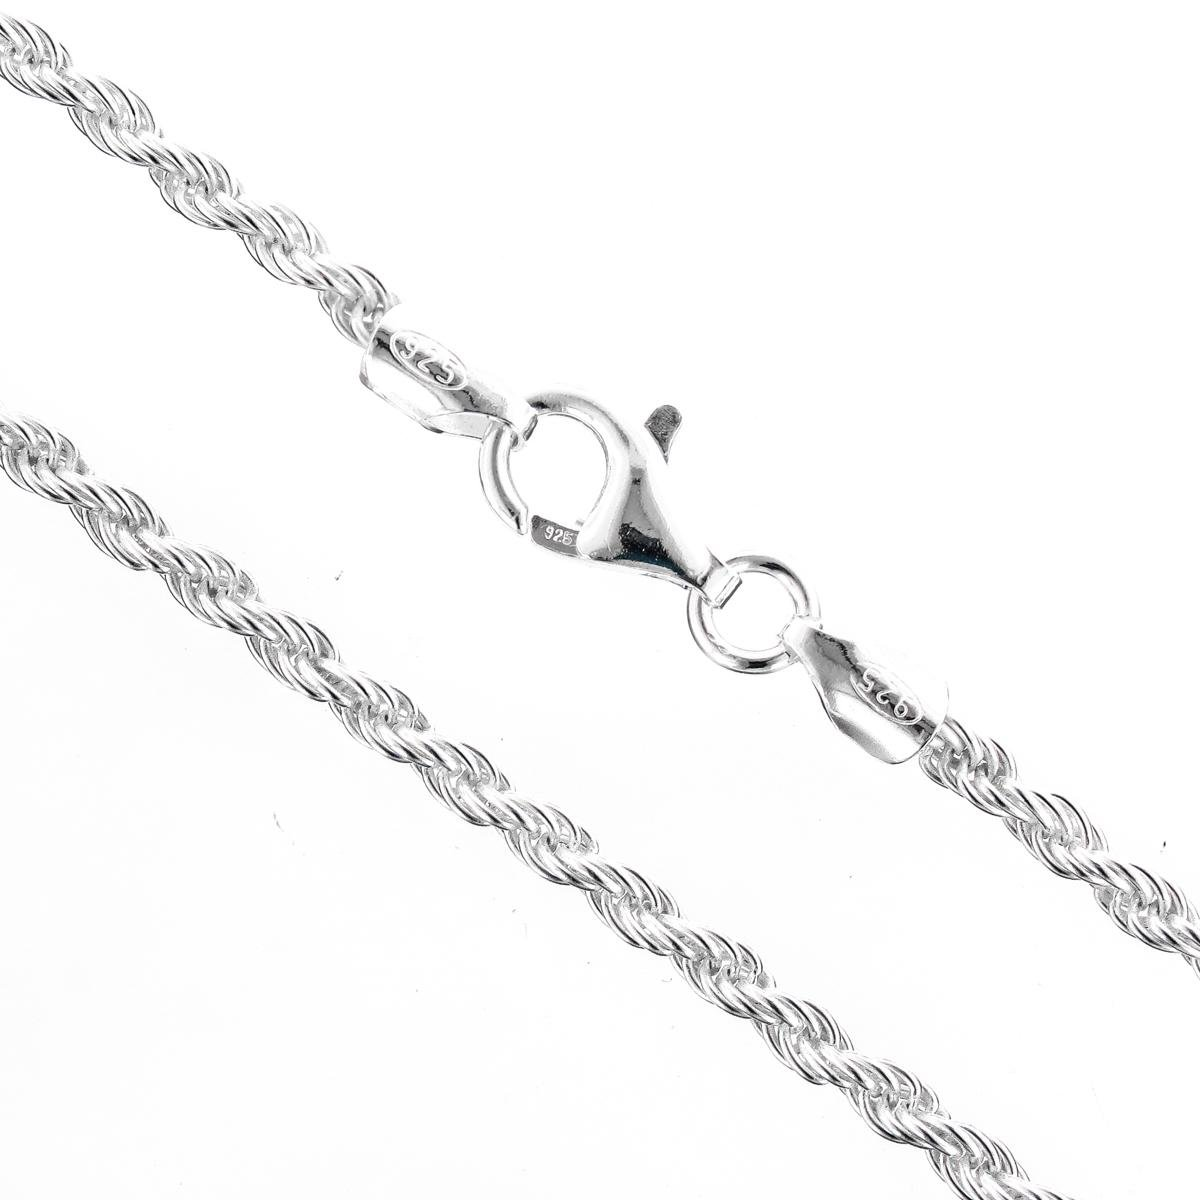 925 Sterling Silver 1.9mm Rope Italian Chain Necklace With Free Anti-Tarnish Storage Capsule